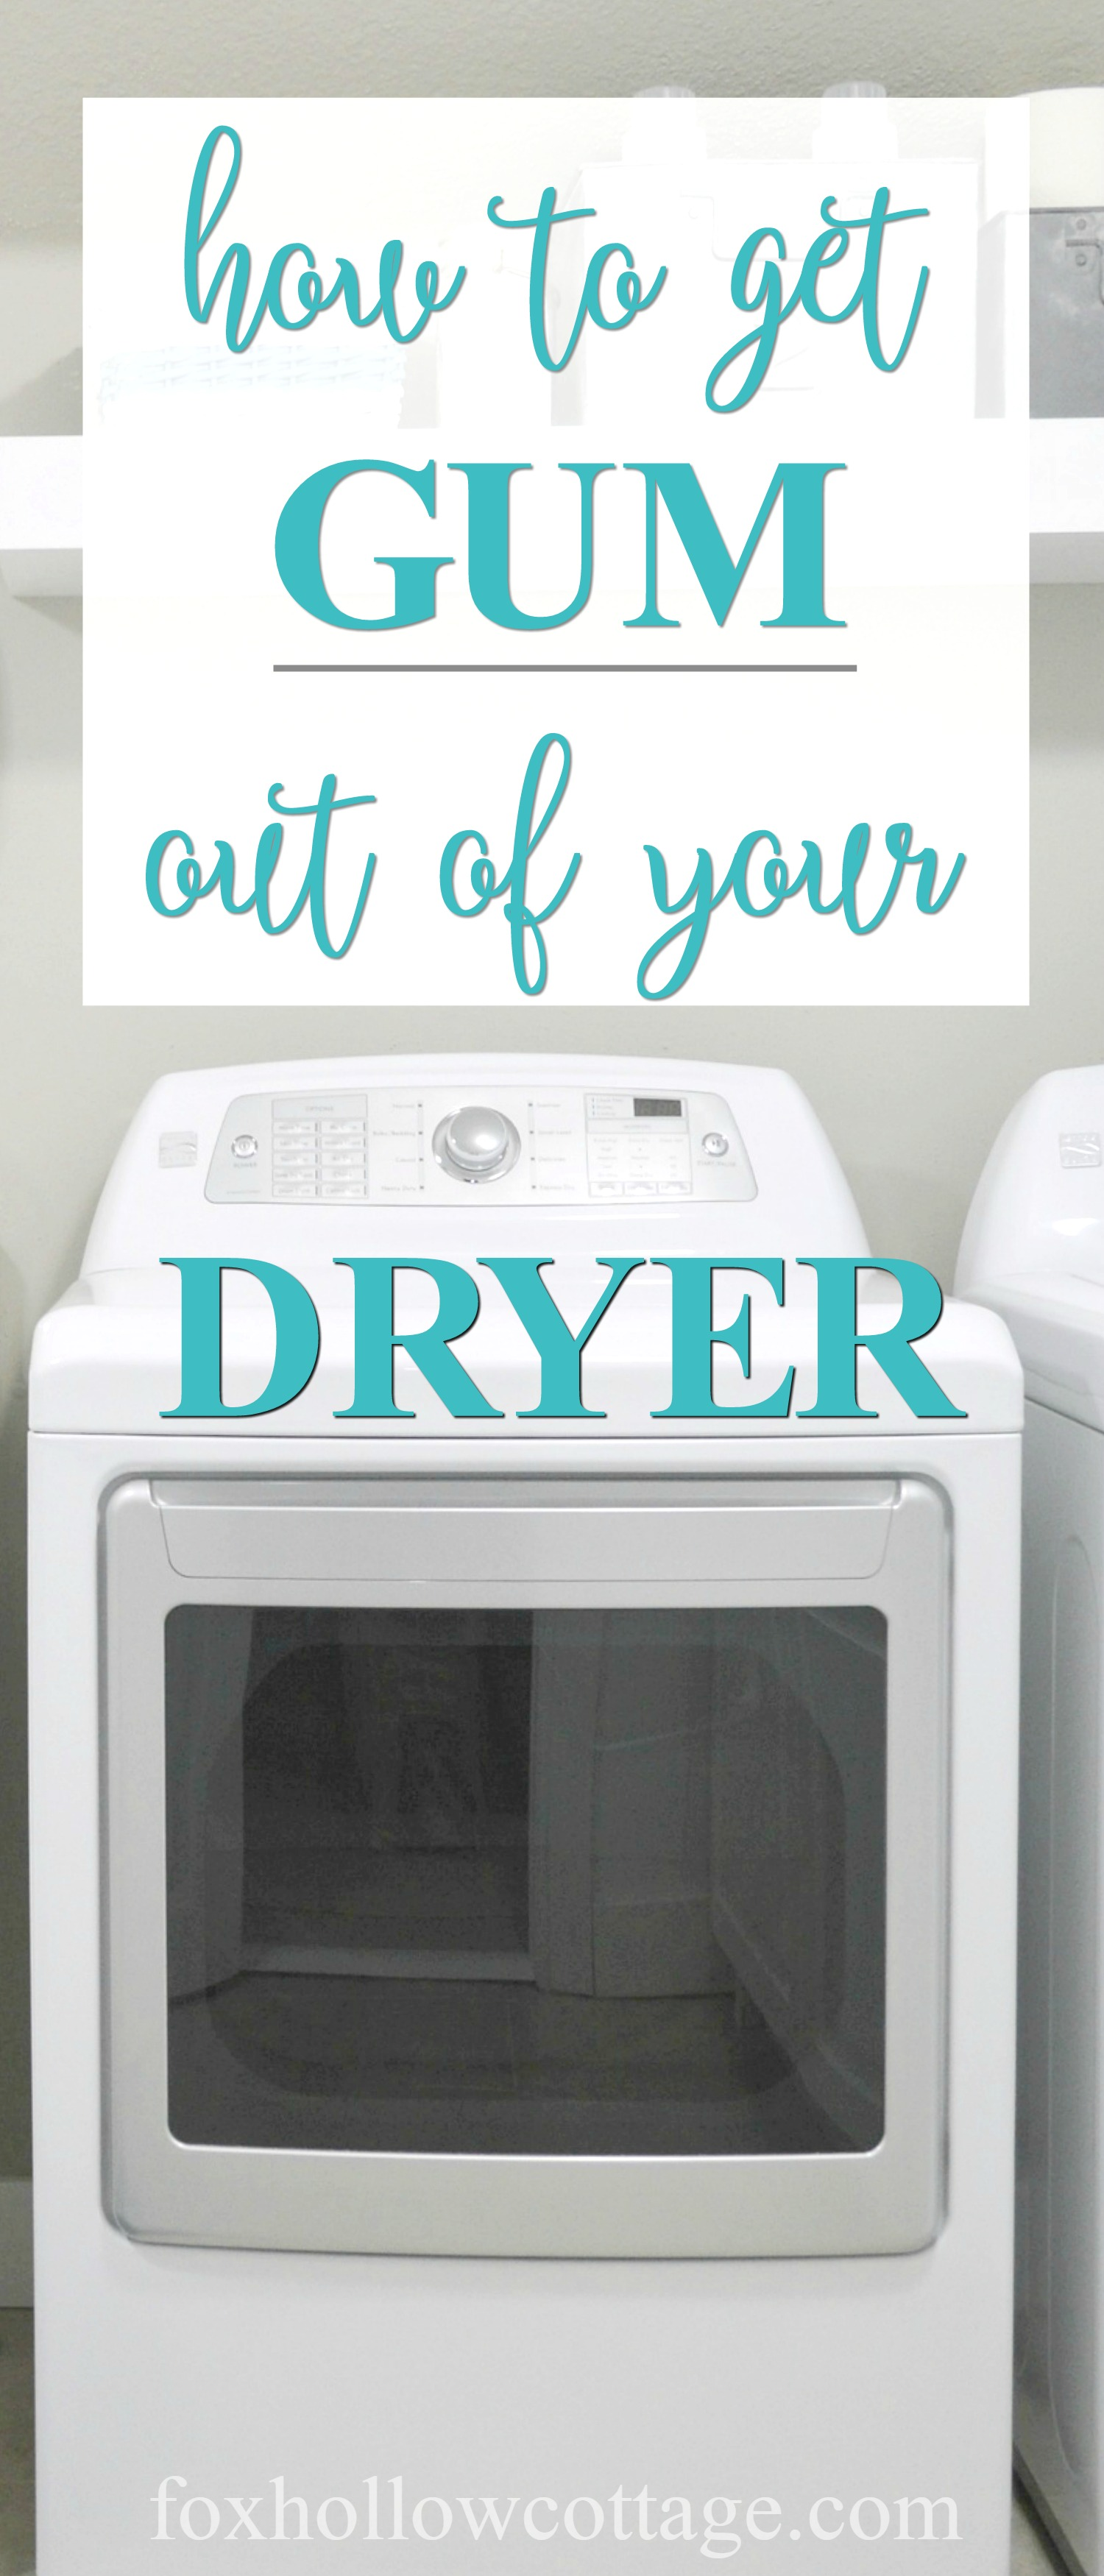 How To Clean Gum From A Dryer | www.foxhollowcottage.com - how to remove and clean dried on gum from your dryer!